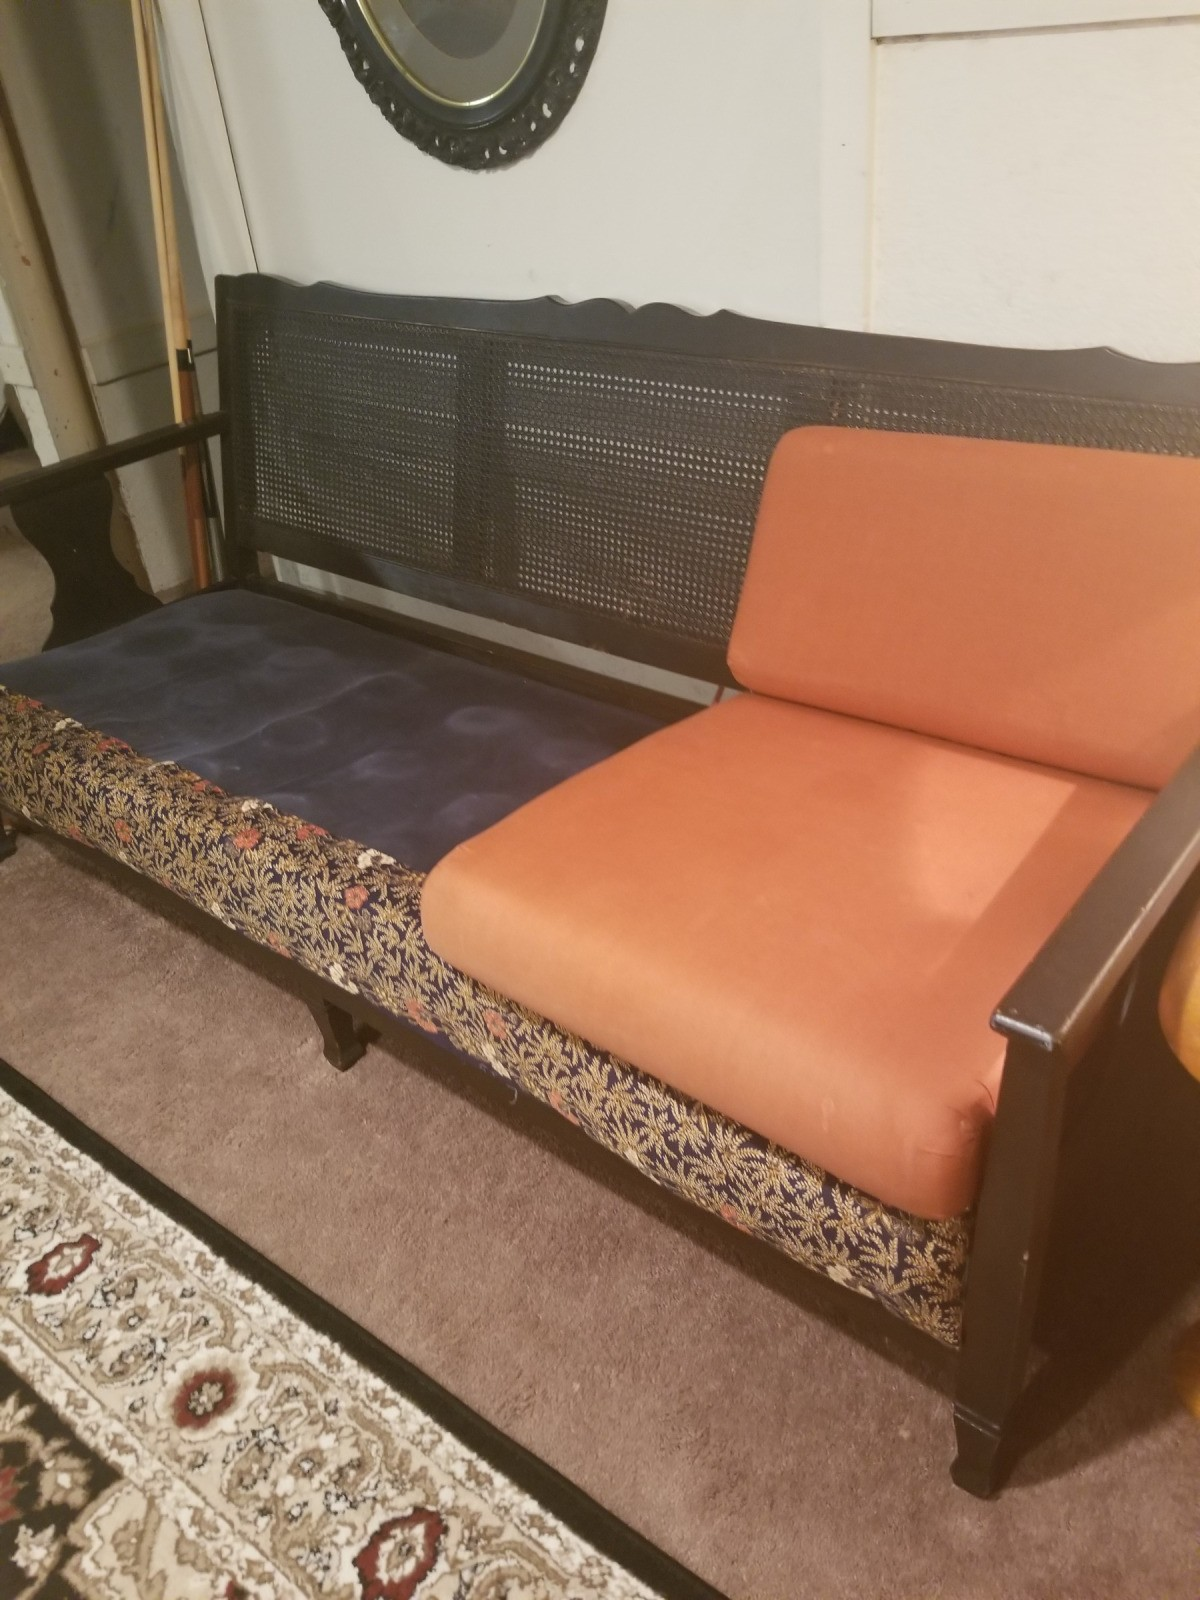 I Was Wondering About The Value Of This Rattan Backed Couch Believe It Is From Early 1960s M Not Sure But Would Love To Find Out History And